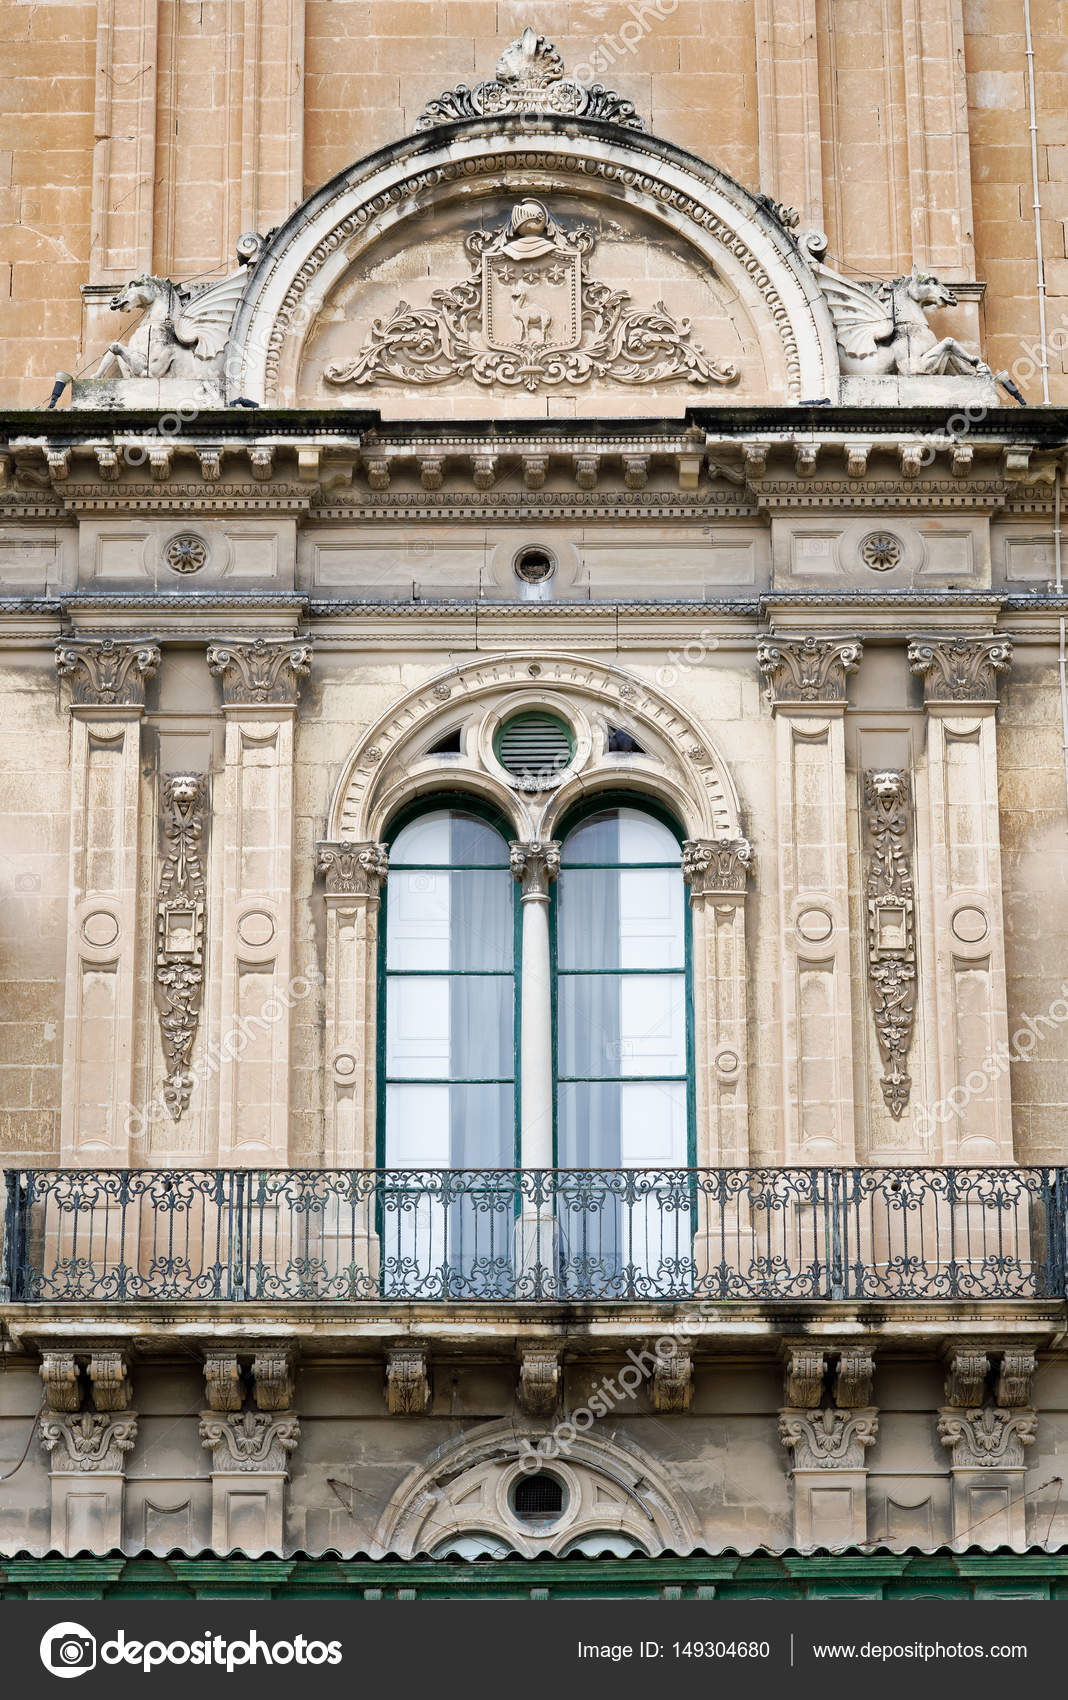 Balcony And Window In Mannerist Style High Renaissance At The Grand Masters Palace Valletta Malta Photo By Dani3315